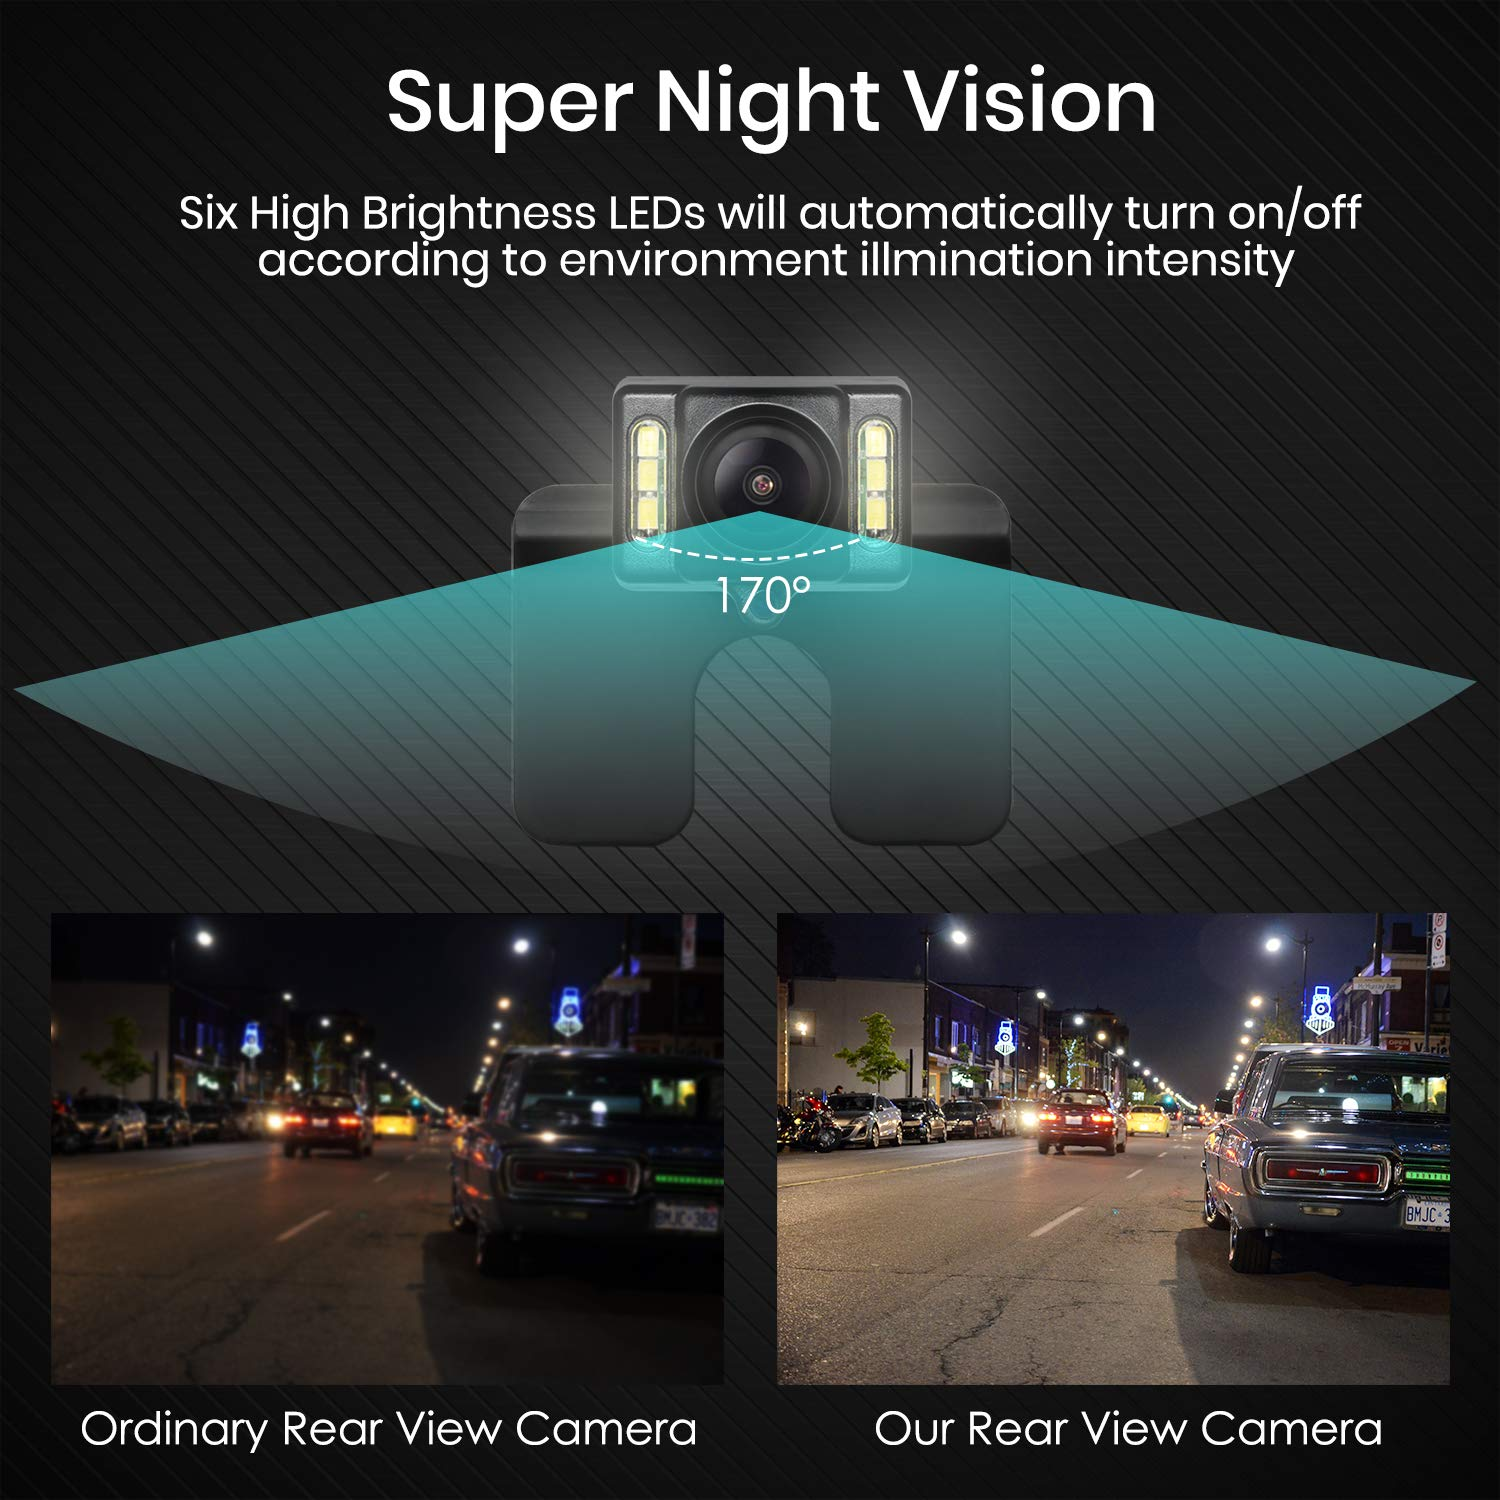 Auto Vox M1w Wireless Backup Camera Kitip 68 Waterproof 89 Toyota Camry Fuel Filter Location Led Super Night Vision License Plate Reverse Rear View Back Up Car Camera43 Tft Lcd